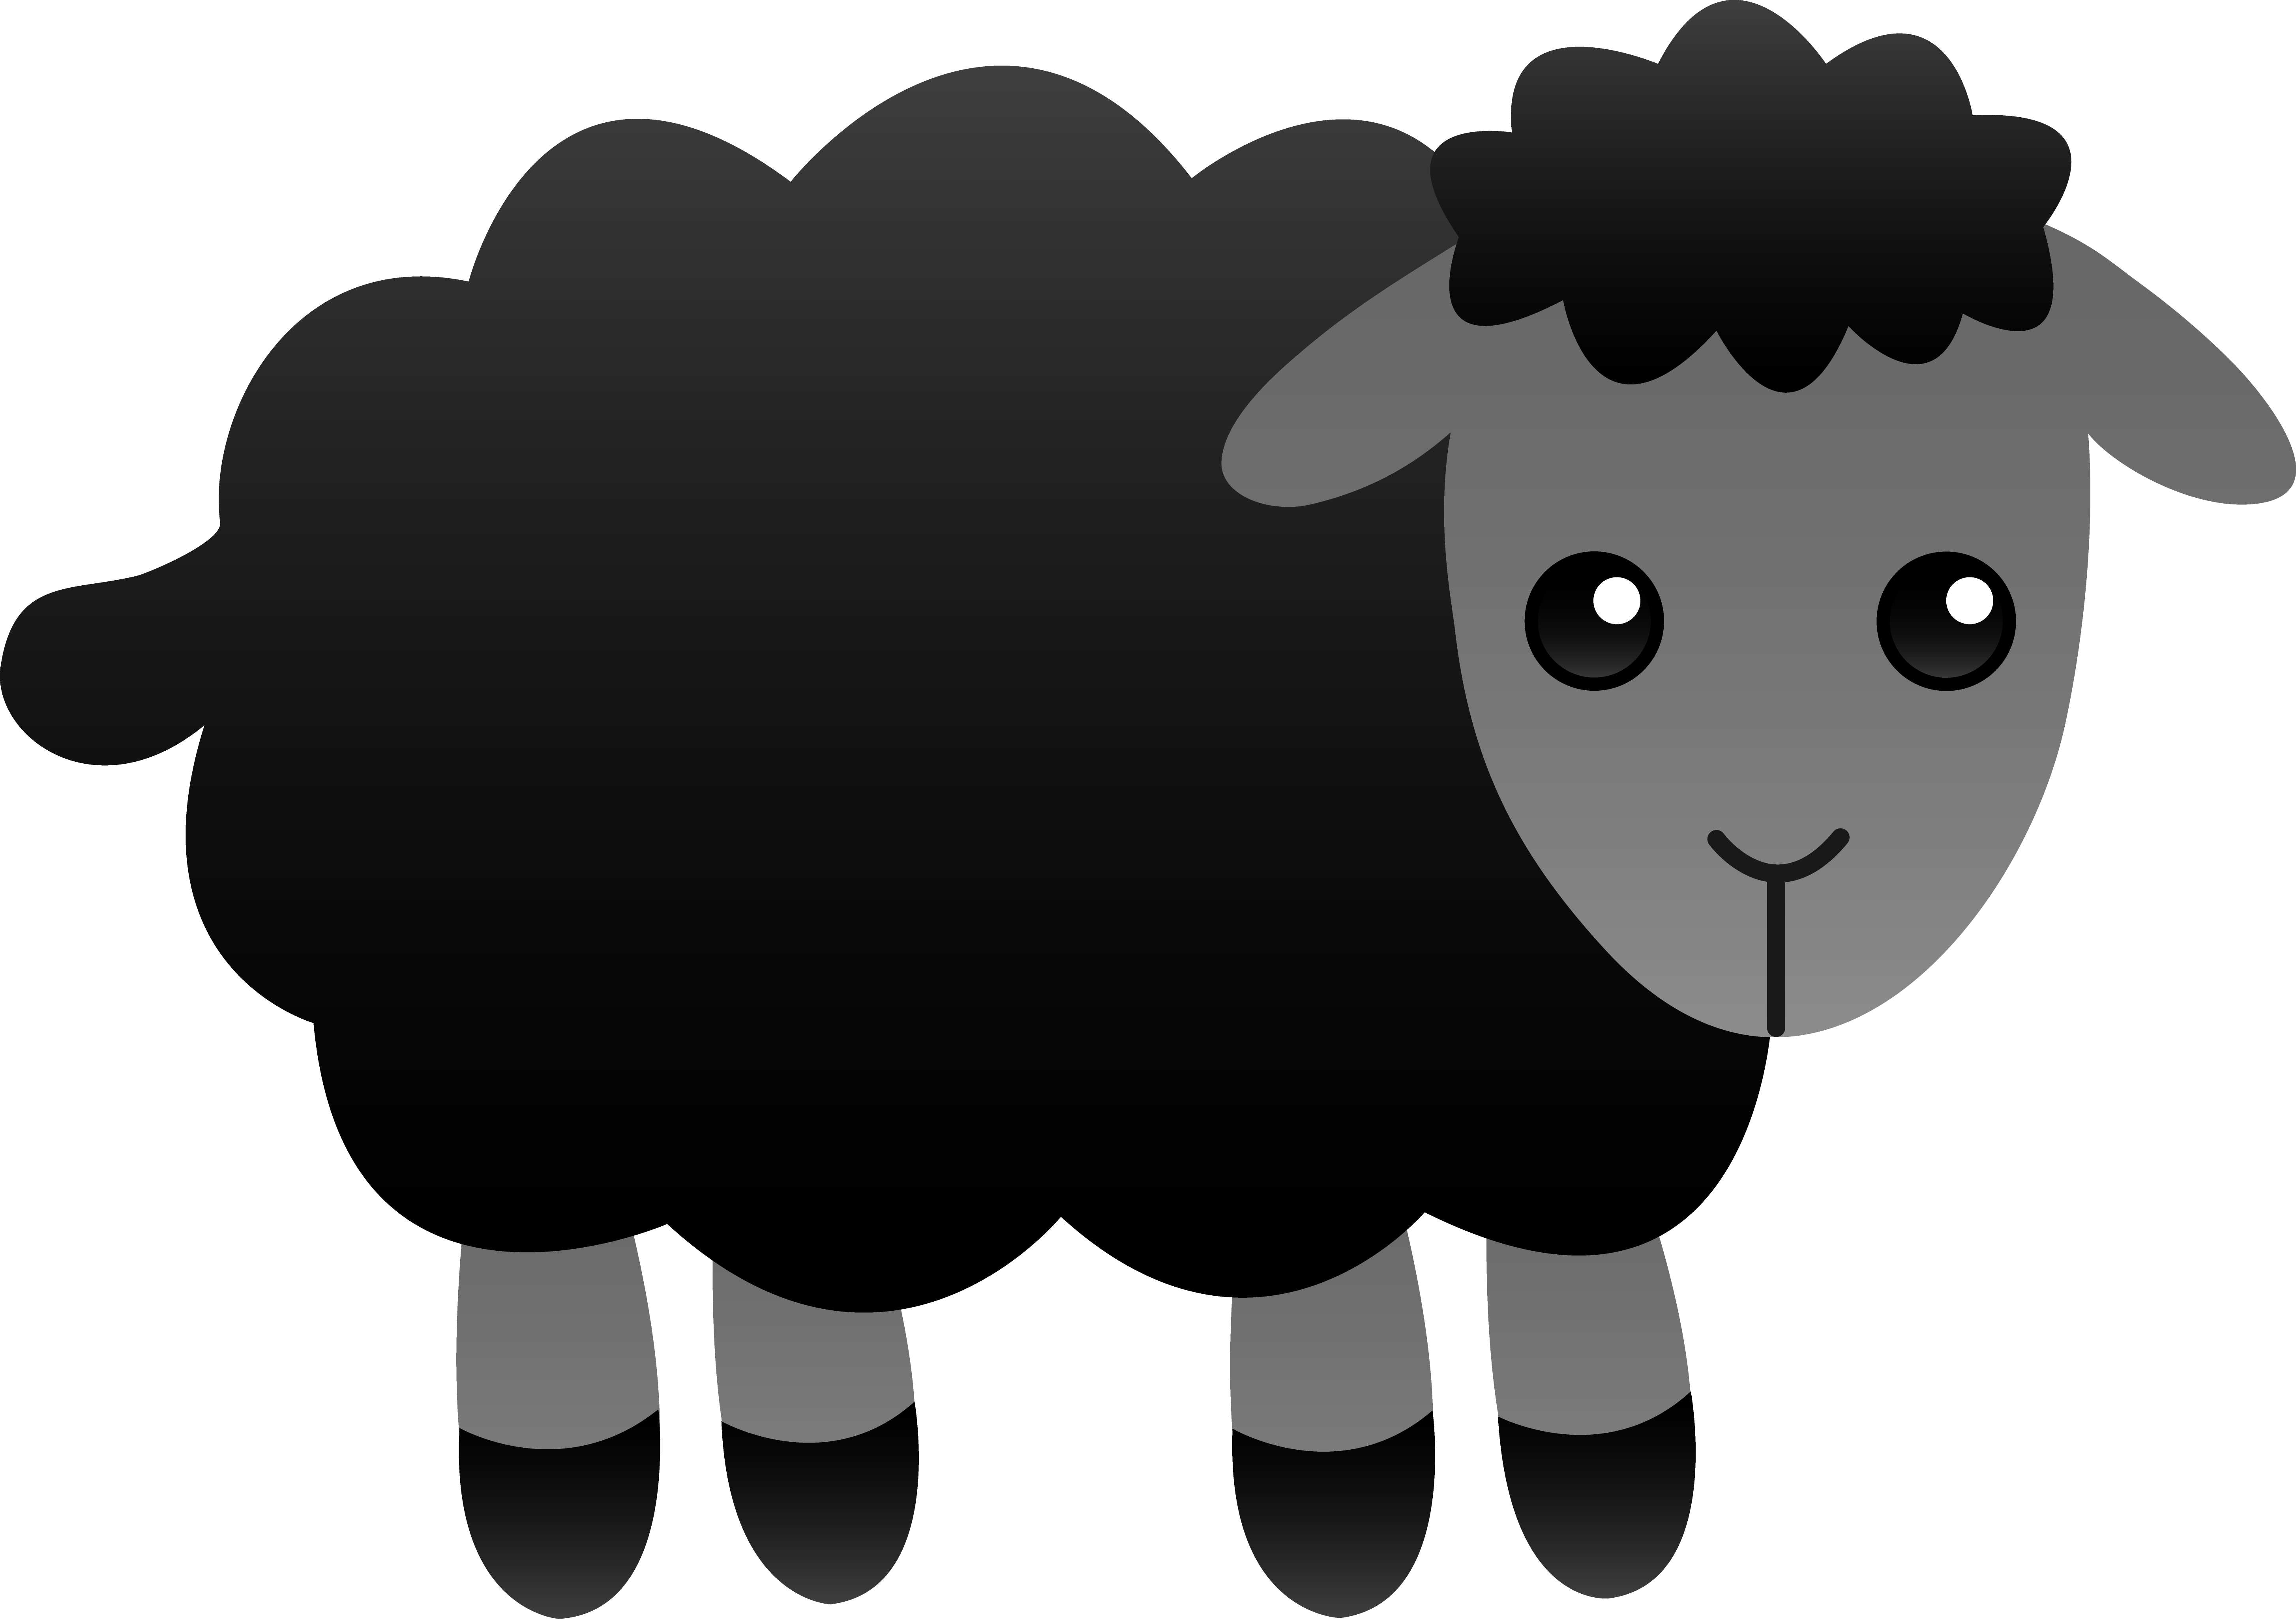 Sheep clipart body. Cute getbellhop cricut pinterest